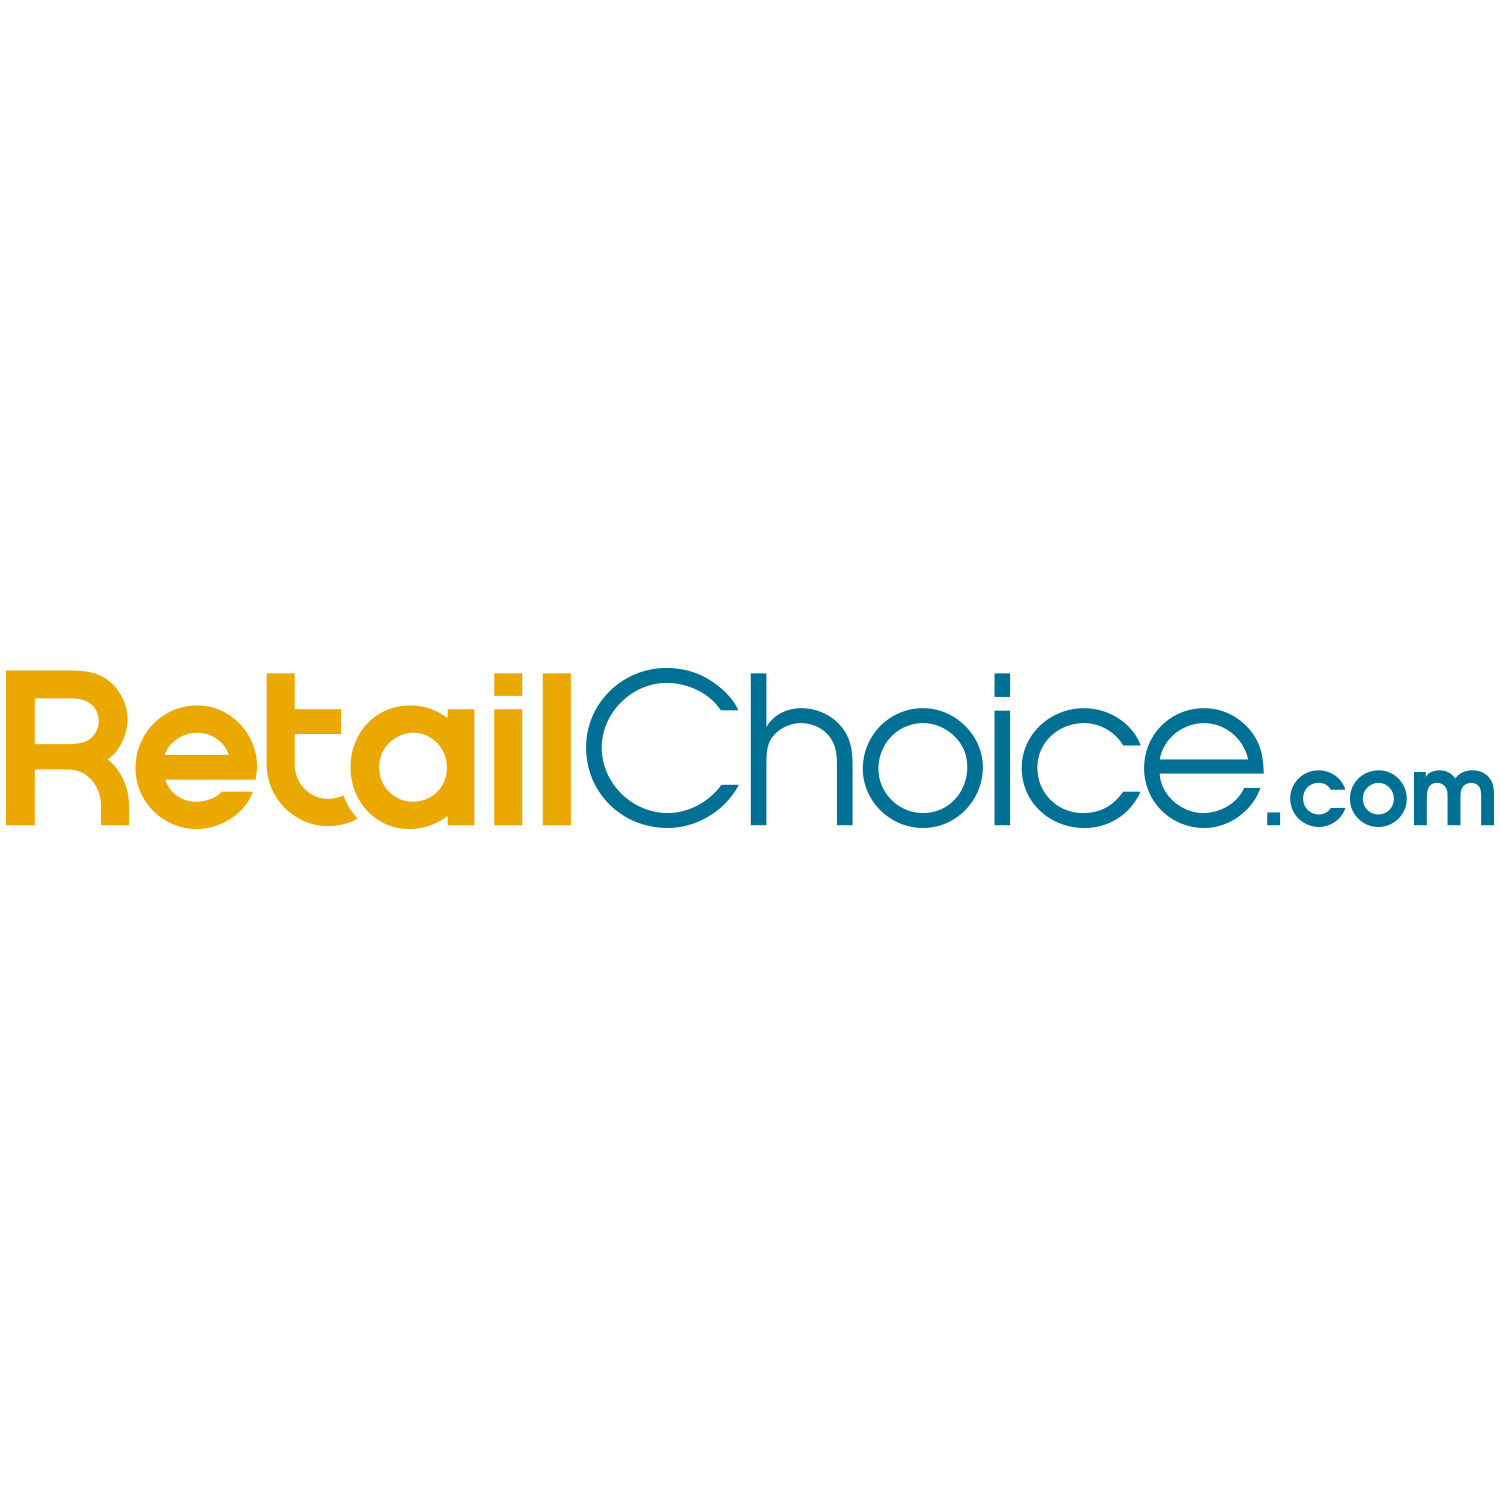 Seo manager in Erdington, Birmingham (B24) | Claires Accessories - RetailChoice